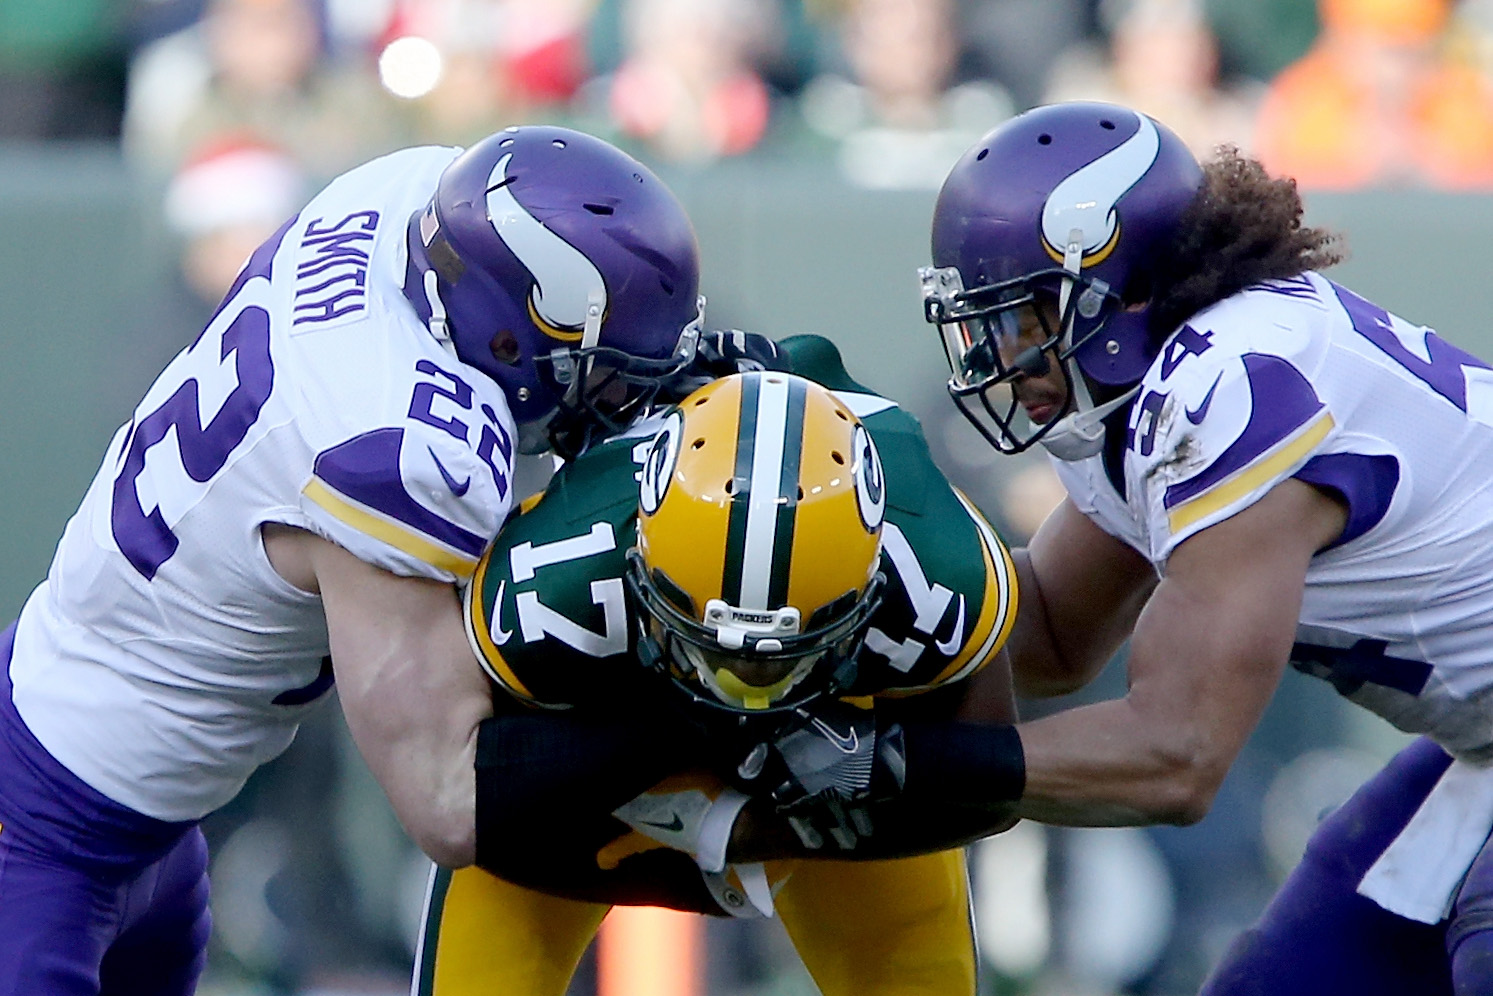 630498214-minnesota-vikings-v-green-bay-packers.jpg